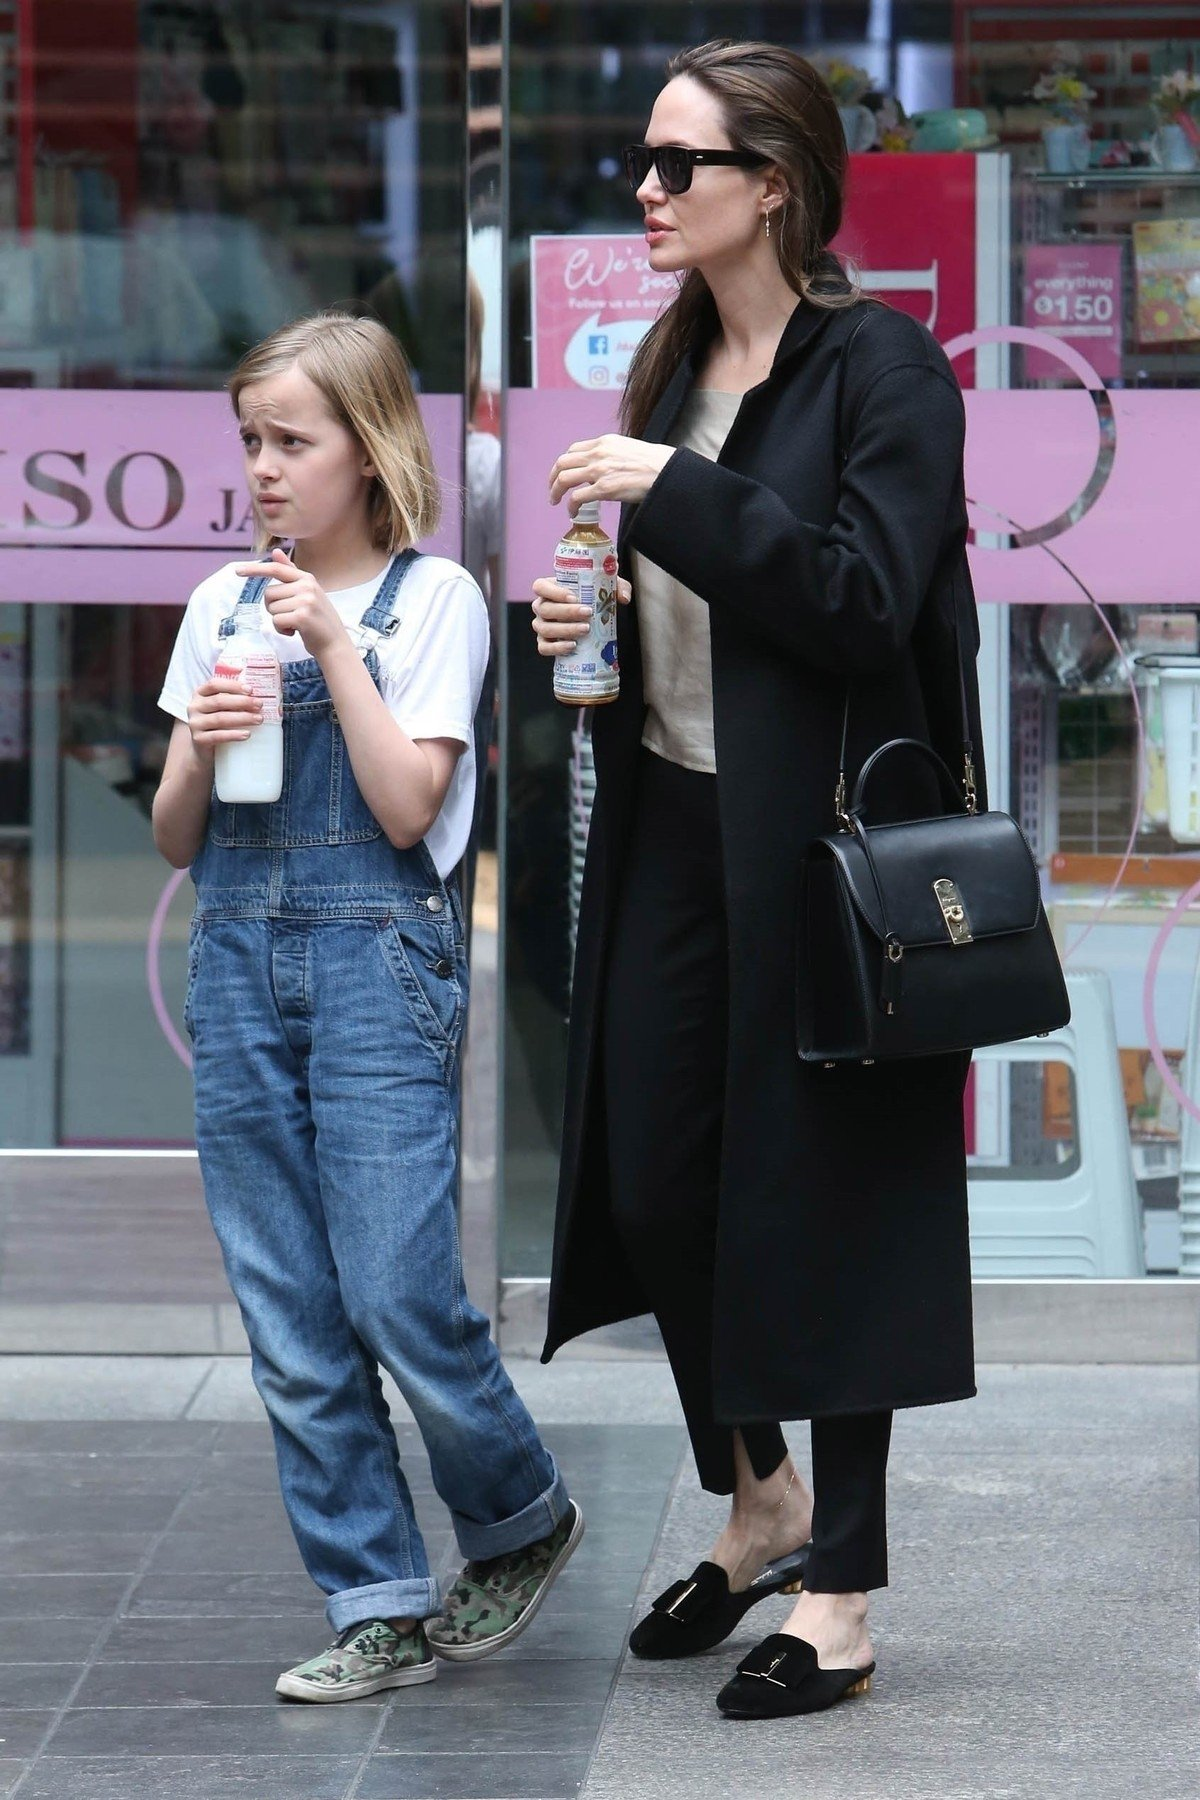 ** RIGHTS: WORLDWIDE EXCEPT IN ITALY ** Los Angeles, CA  - *EXCLUSIVE*  - Actress Angelina Jolie spends the day with daughter Vivienne. Both check out a few stores at a local mall in Los Angeles.  Pictured: Angelina Jolie, Vivienne Jolie-Pitt    *UK Clients - Pictures Containing Children Please Pixelate Face Prior To Publication*, Image: 429548482, License: Rights-managed, Restrictions: , Model Release: no, Credit line: Profimedia, Backgrid USA